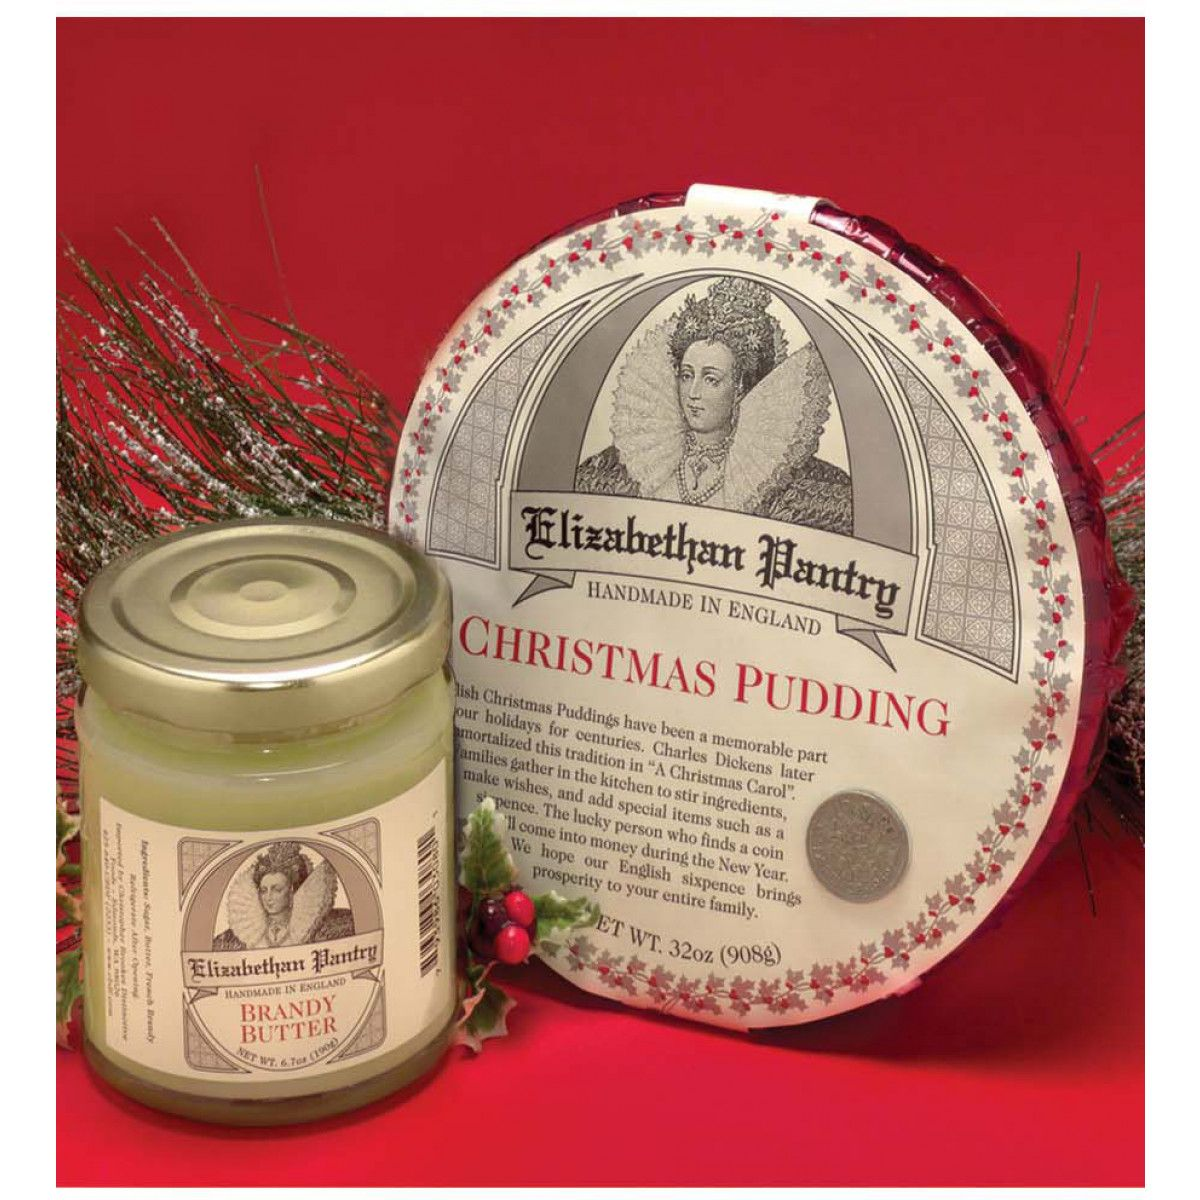 Christmas Pudding with Brandy Butter from BBC Shop for $30